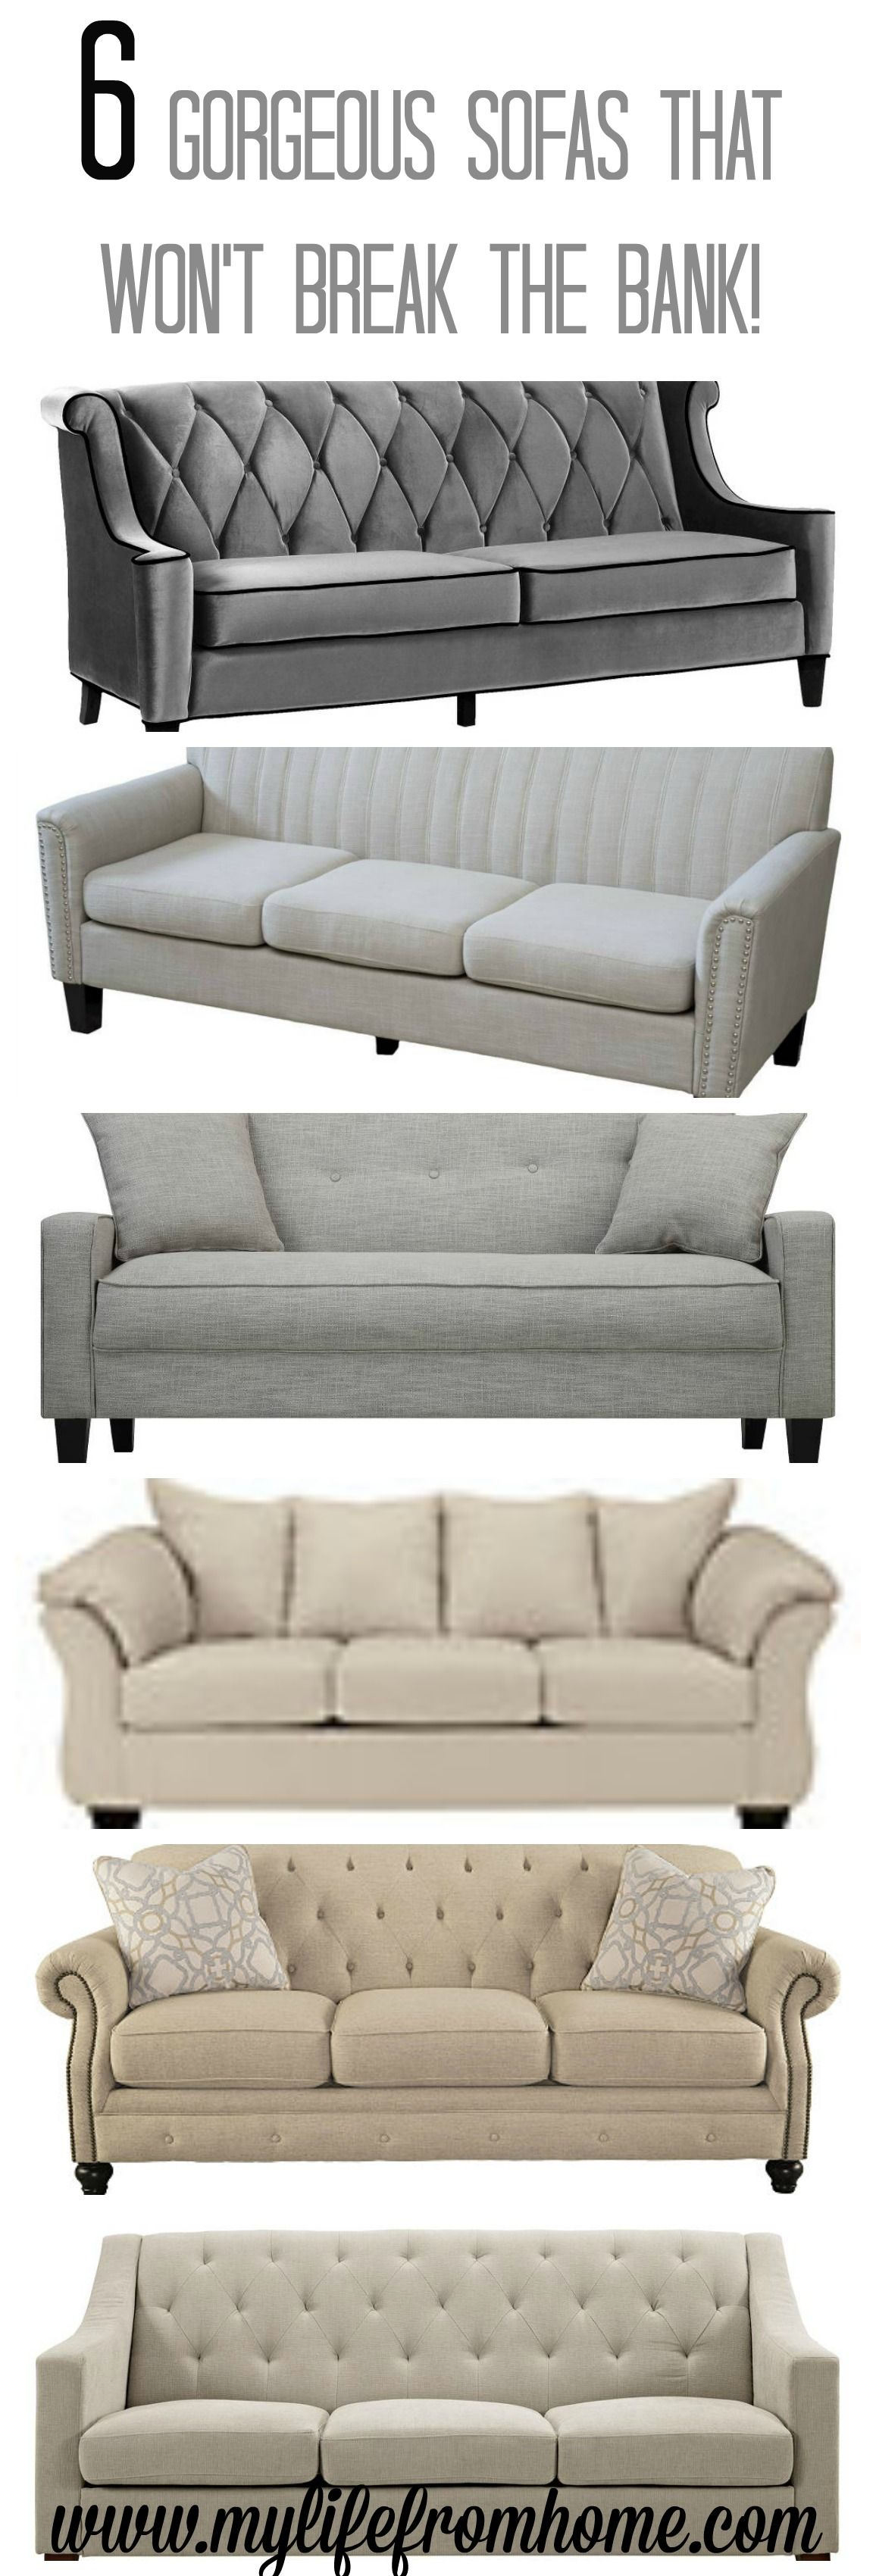 6 Gorgeous Sofas That Are Affordable Yet Stylish And Chic. Perfect For Any  Space!